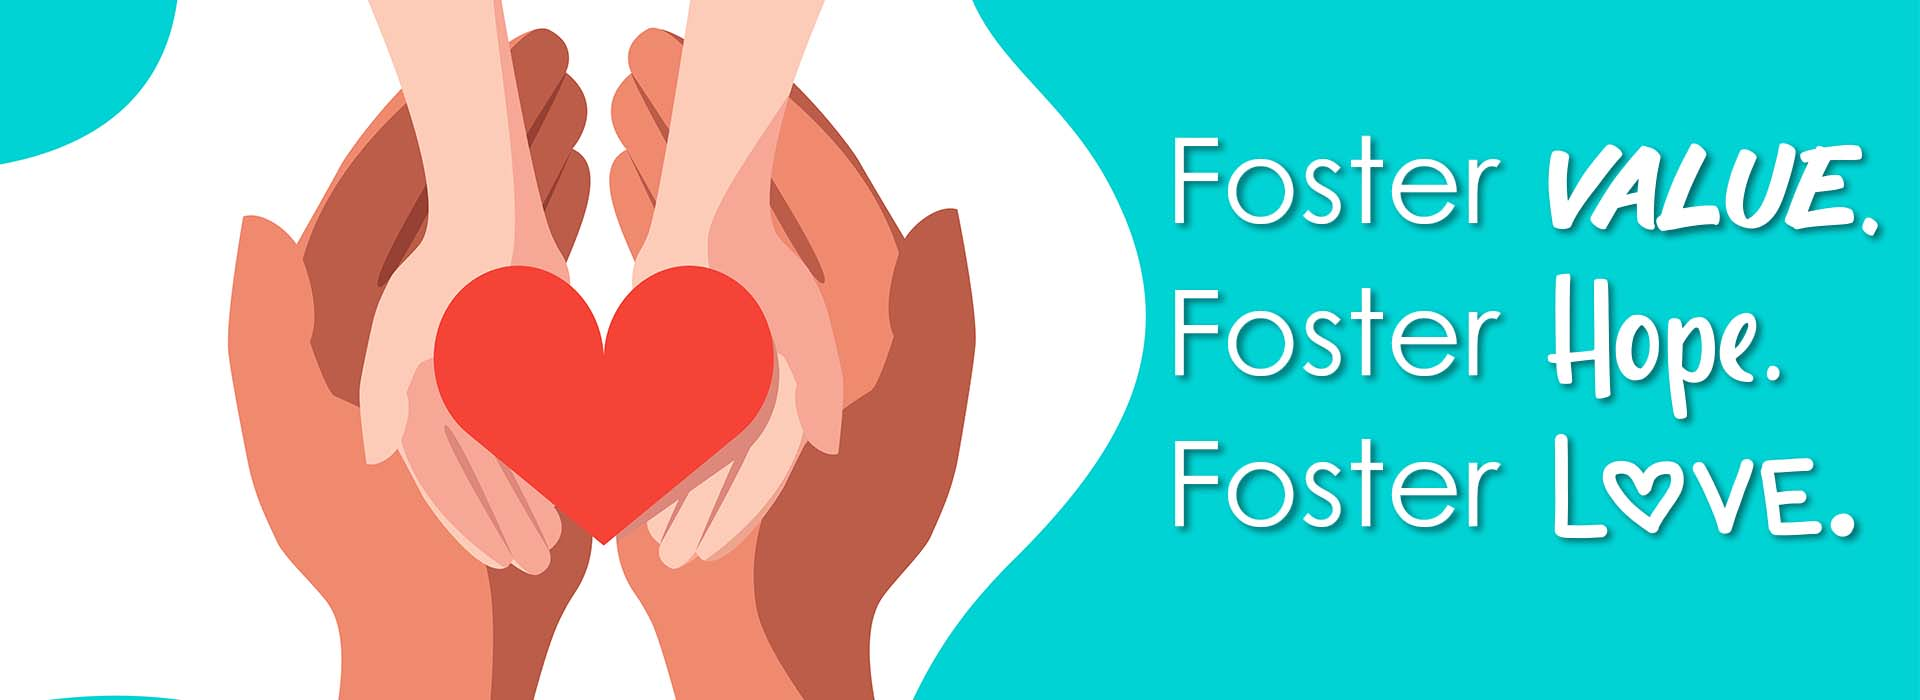 Foster Value, Foster Hope, Foster Love Banner